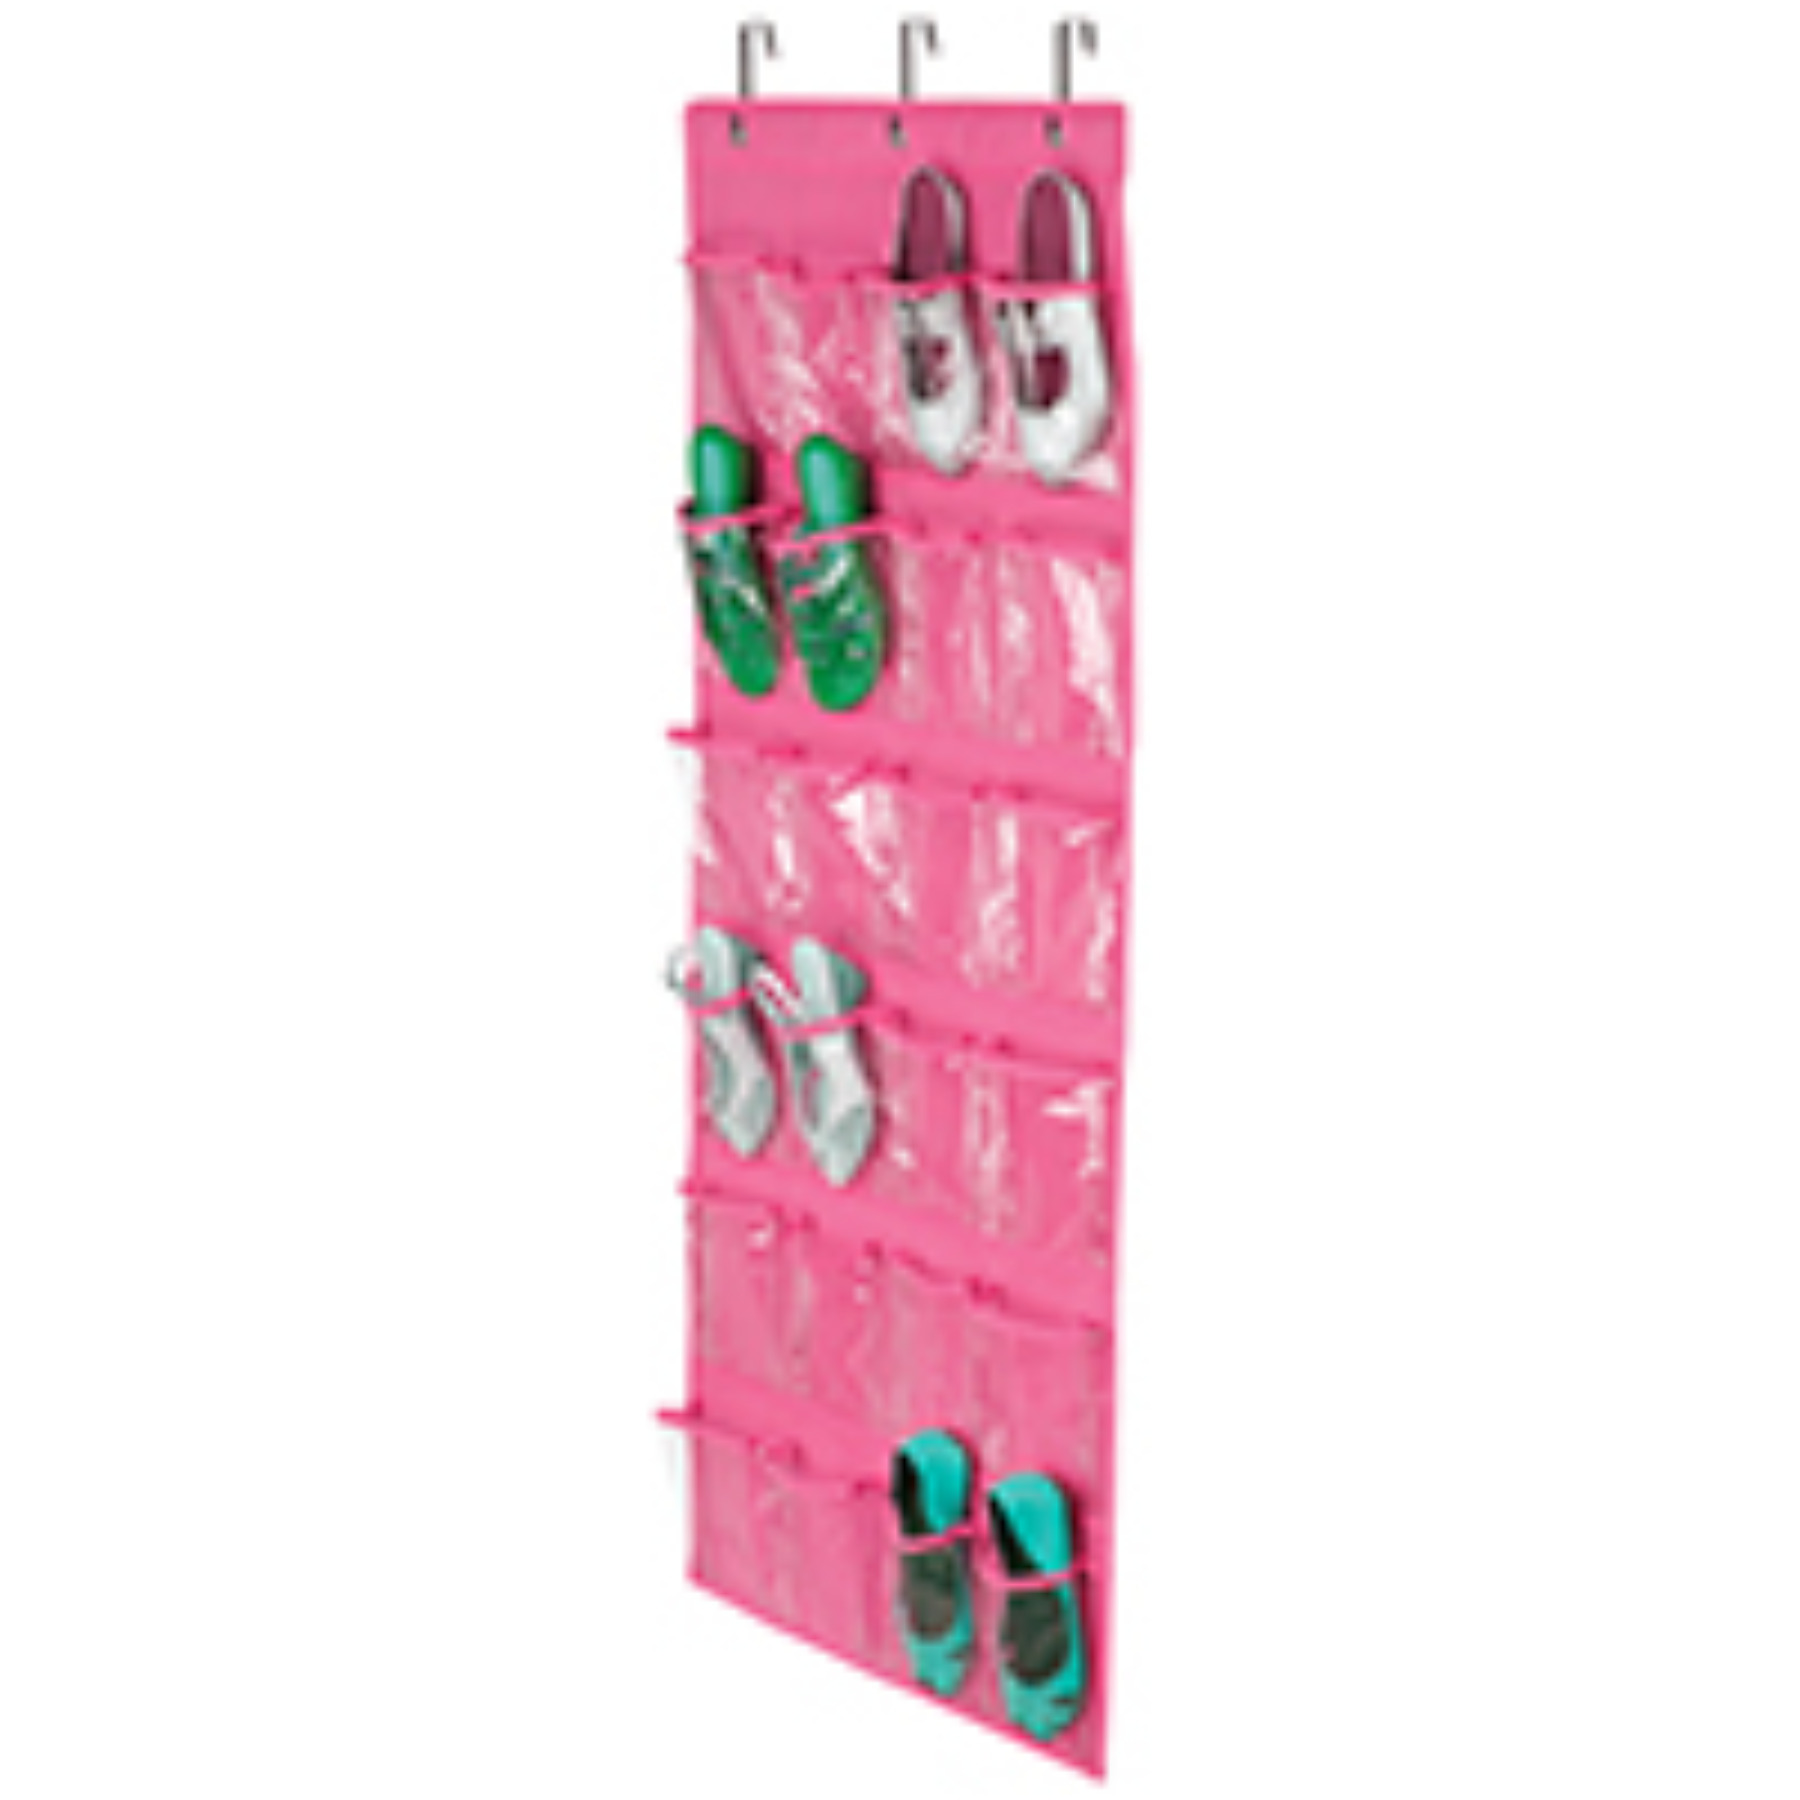 Honey-Can-Do SFT-01642 24-Pocket Over-The-Door Closet Organizer, 57 in L x 19 in W x 1 in D, Pink